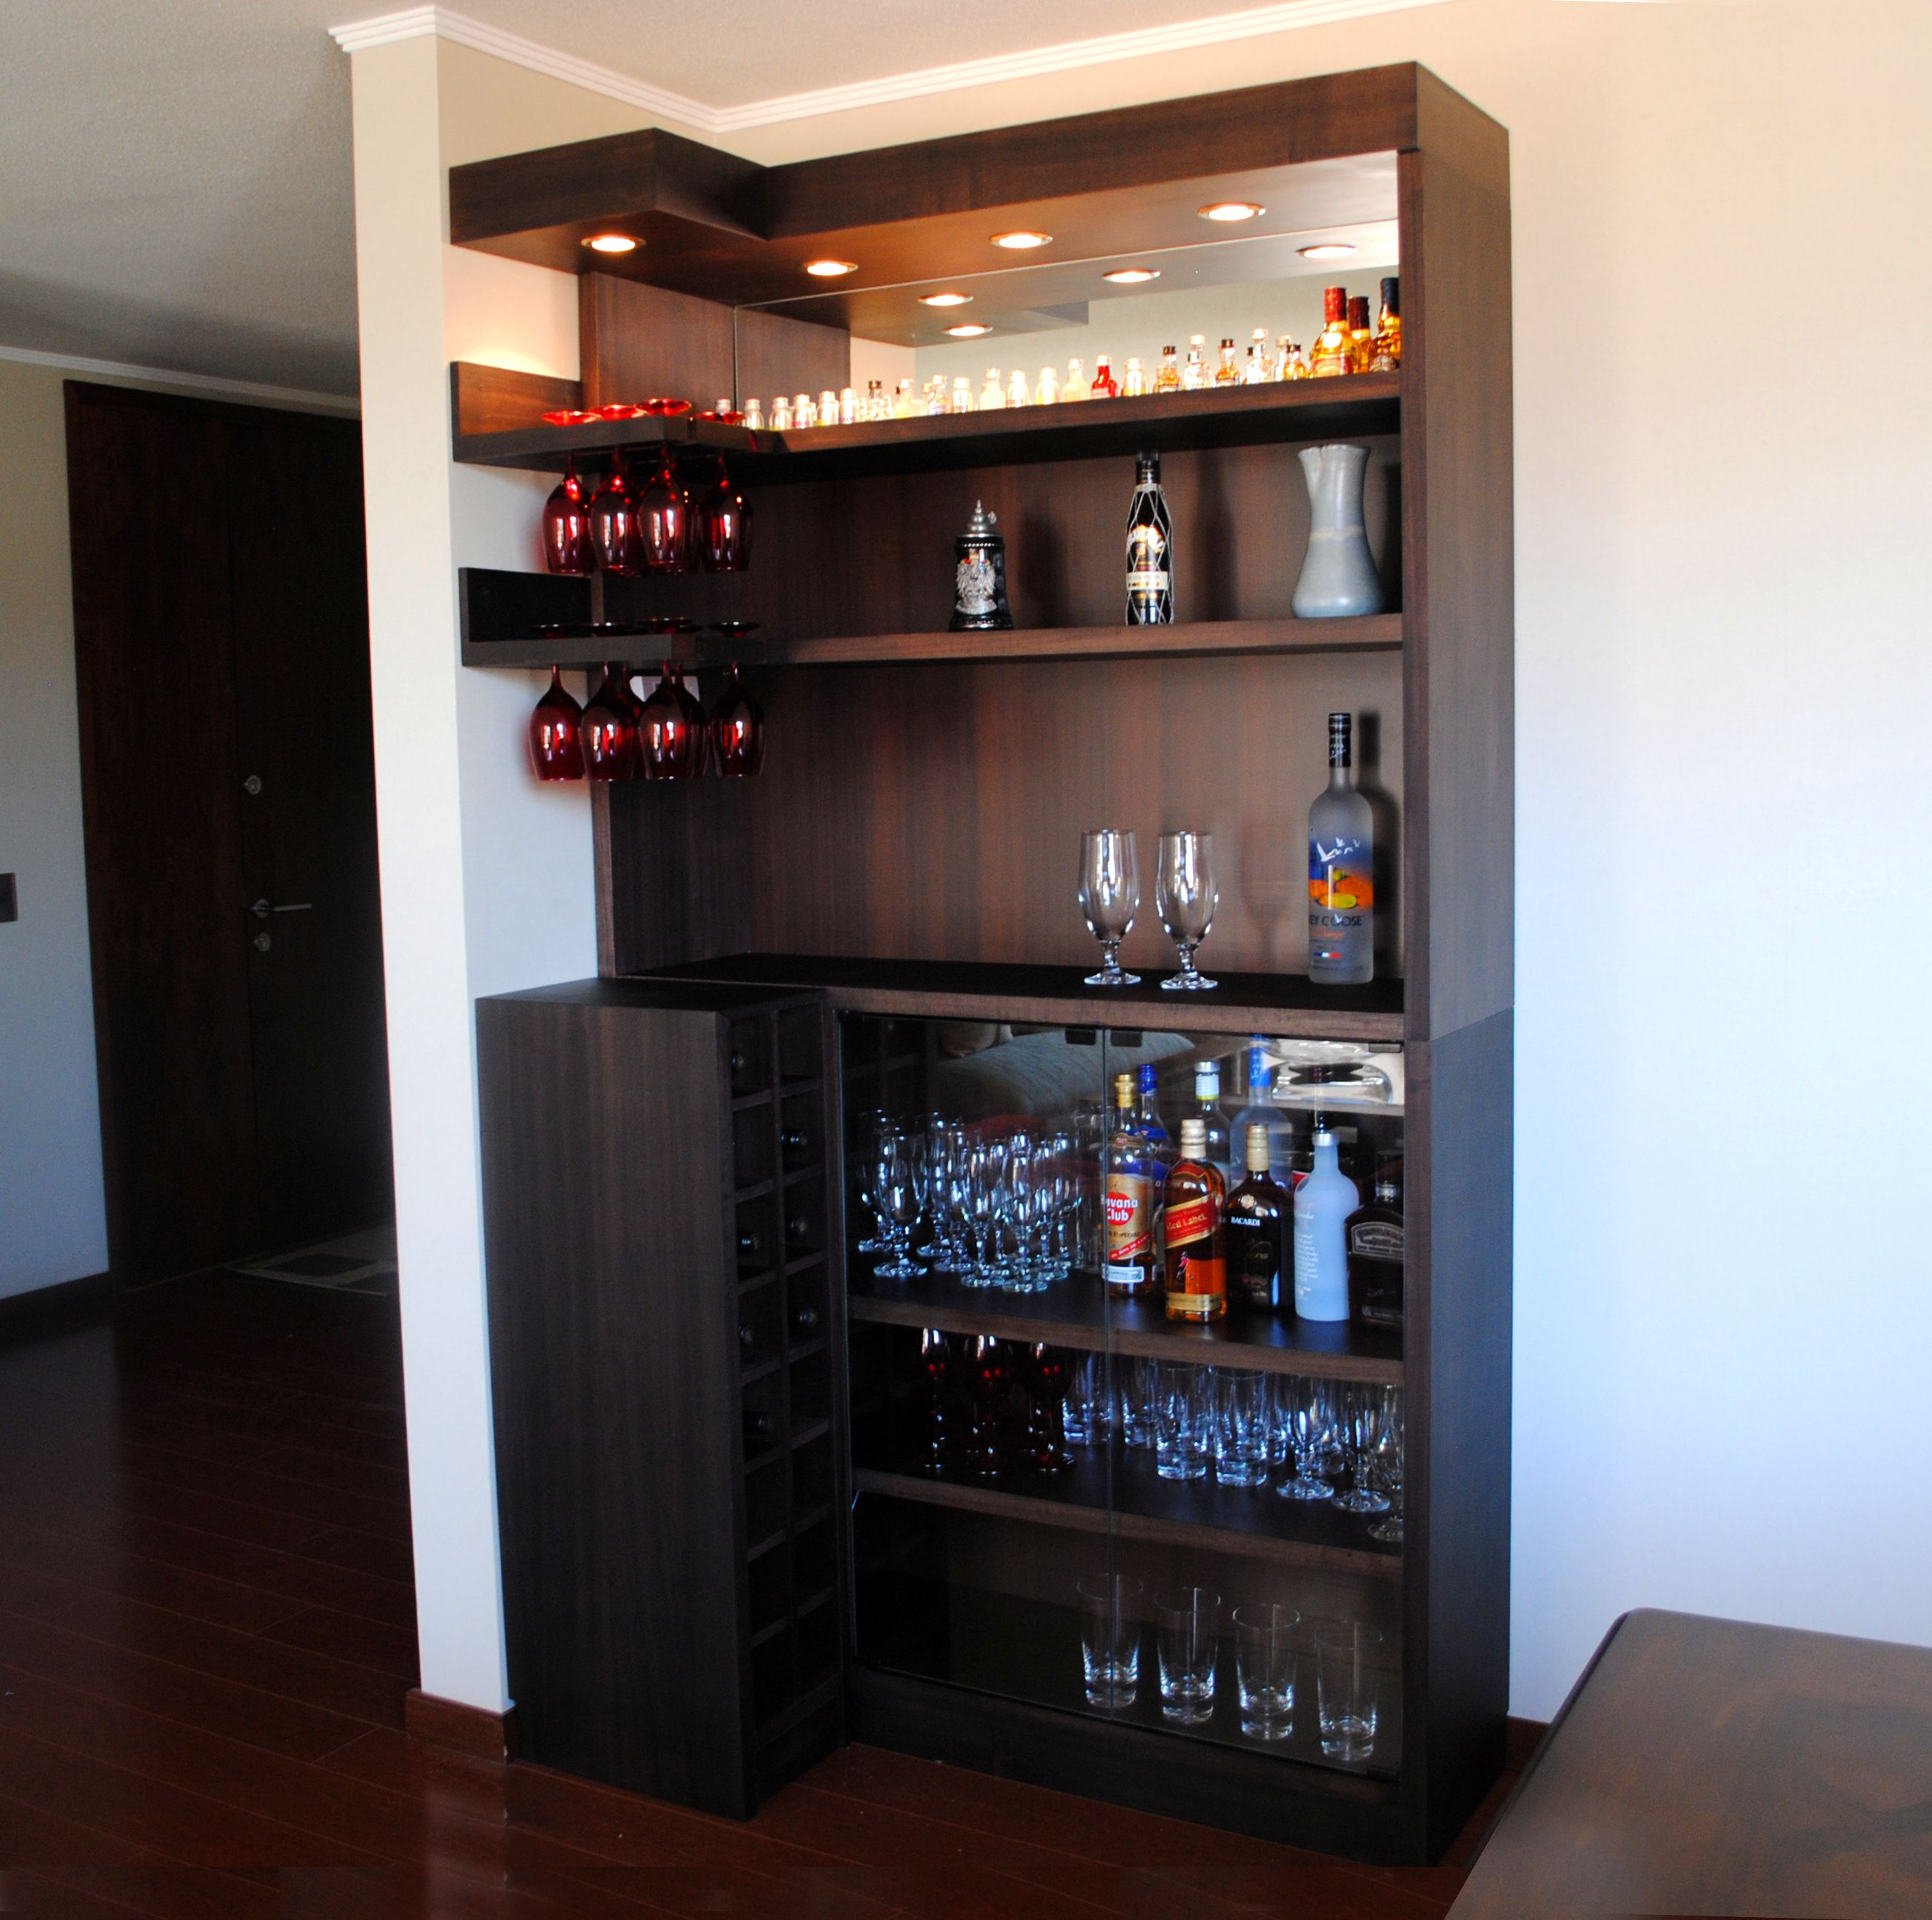 Bar En L De Coigue Con Luces Y Espejo Organizing Pinterest  # Muebles Luvak Queretaro